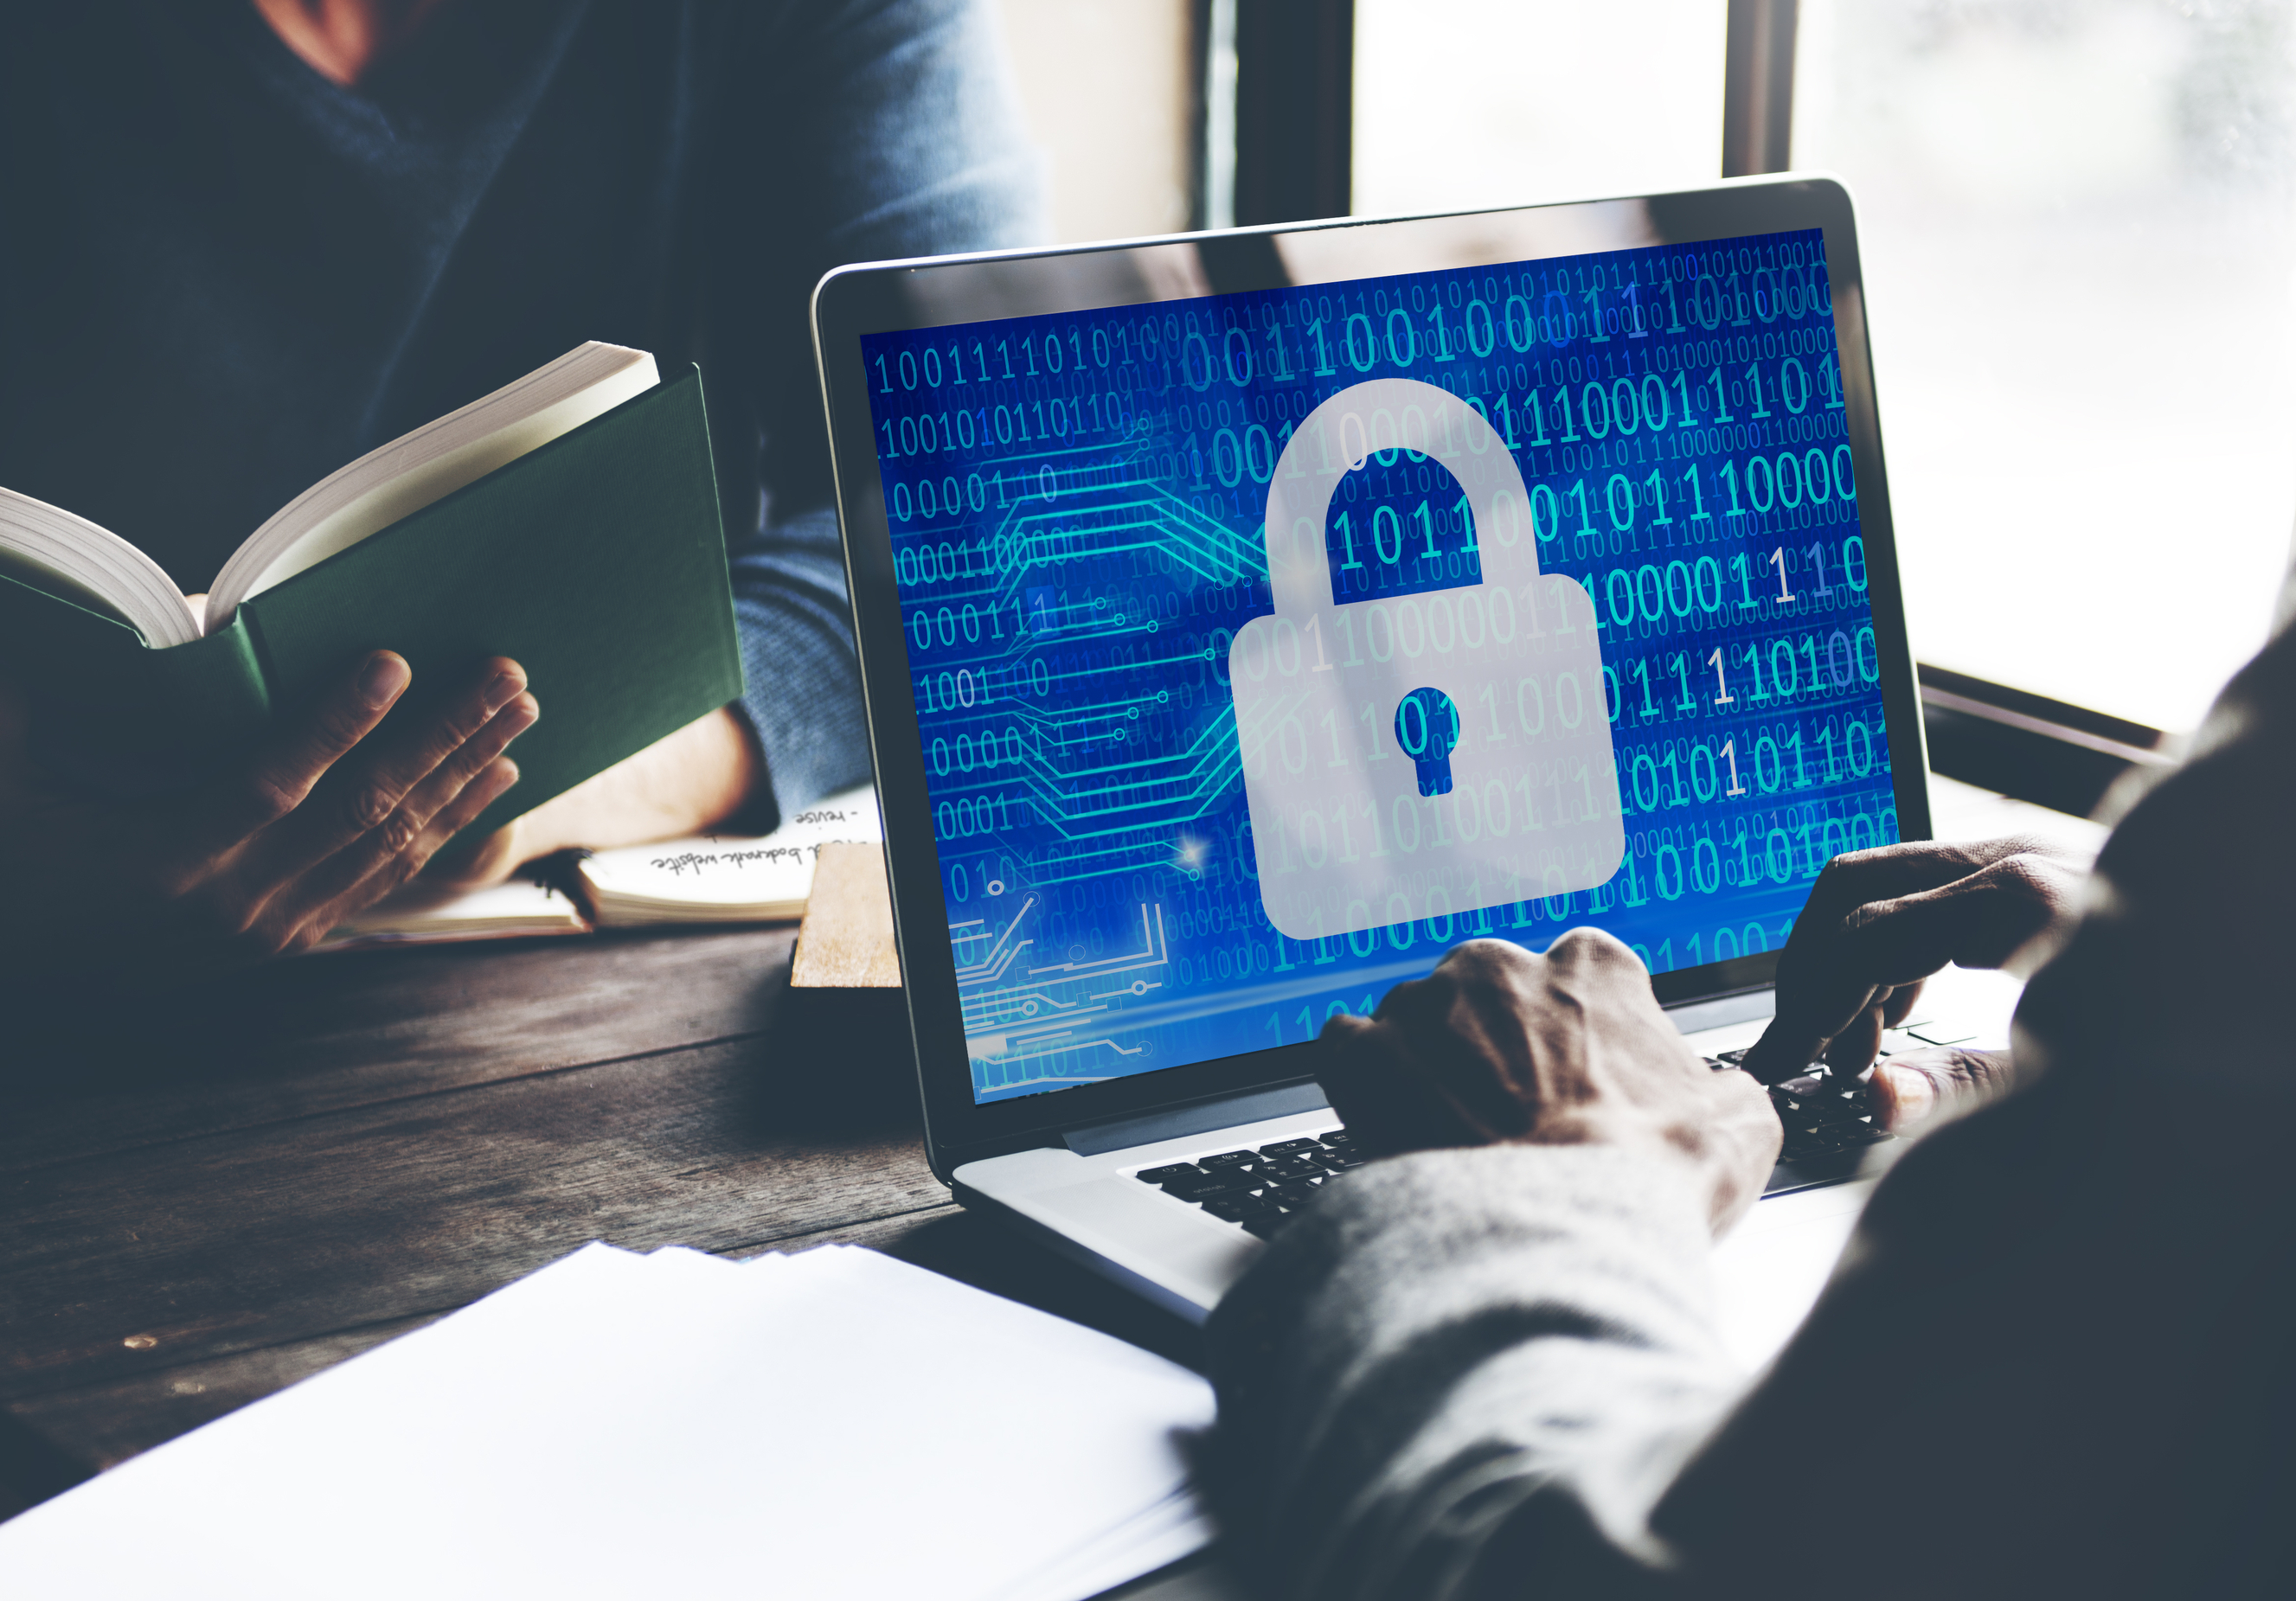 </p>